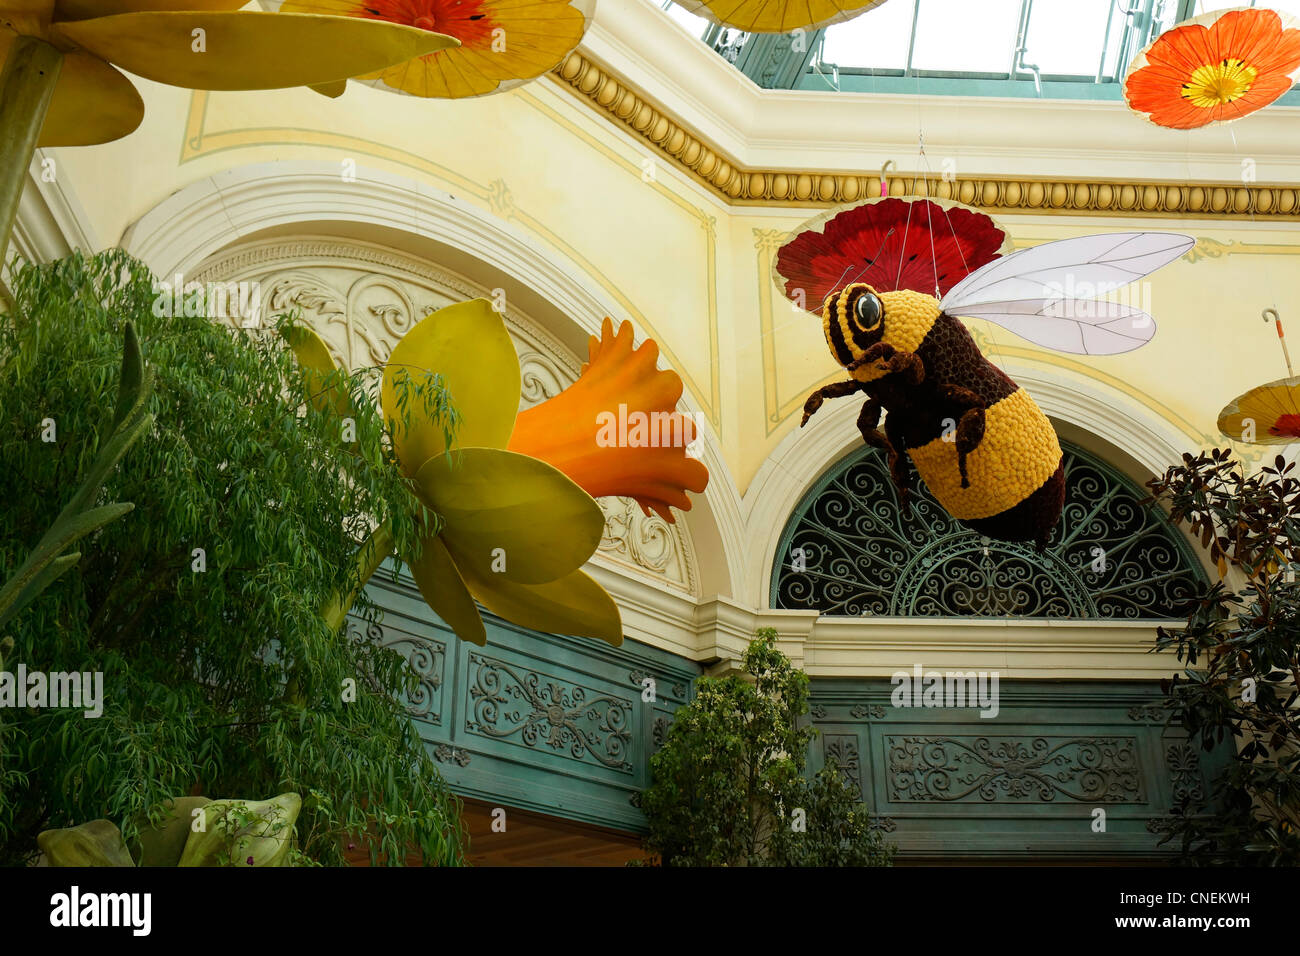 Inside the Bellagio Hotel and Casino, Conservatory, Gardens, Las Vegas - Stock Image